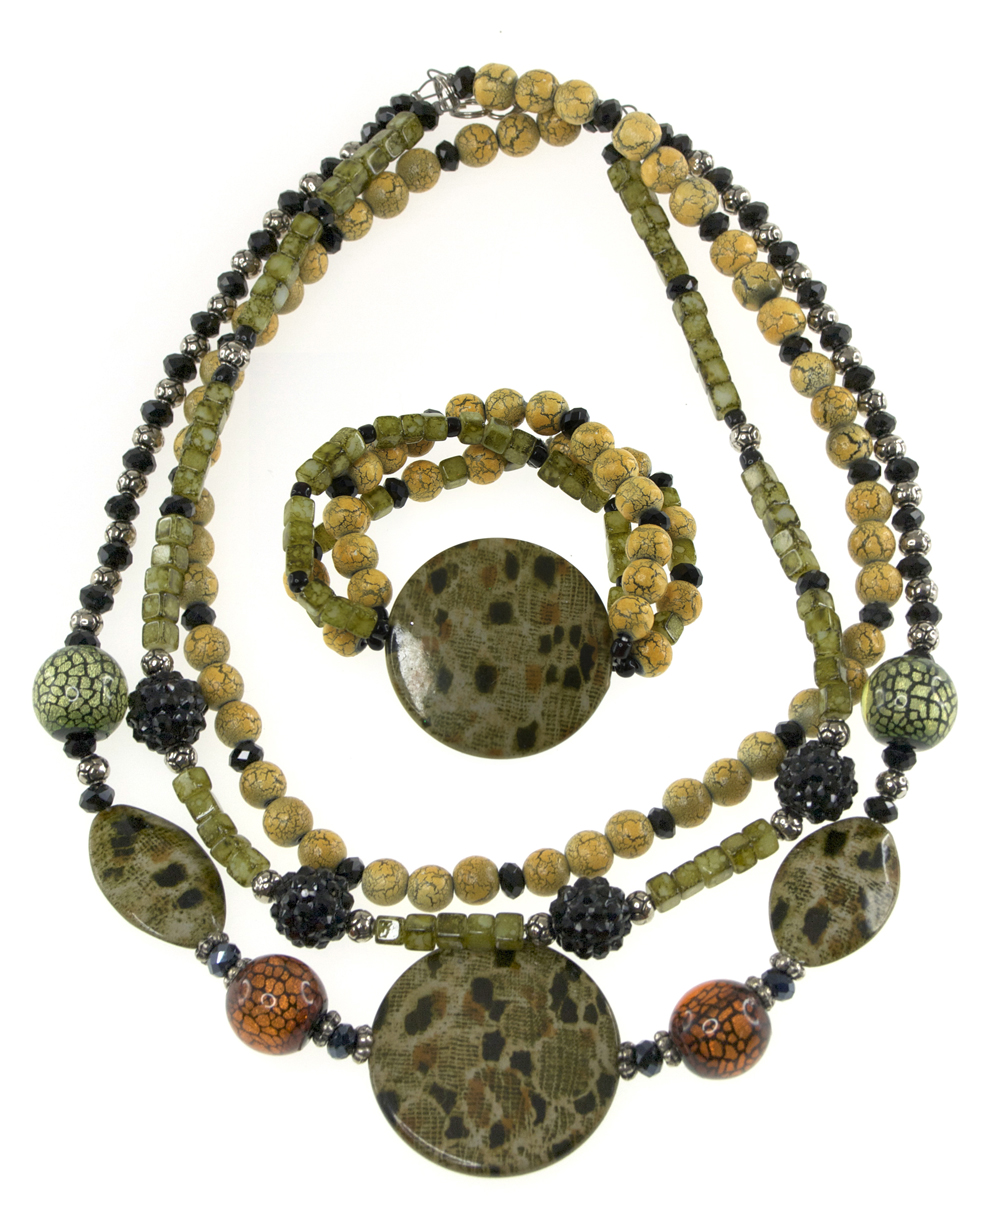 Summery Safari Style Necklace and Bracelet Set, designed by Jess Danos